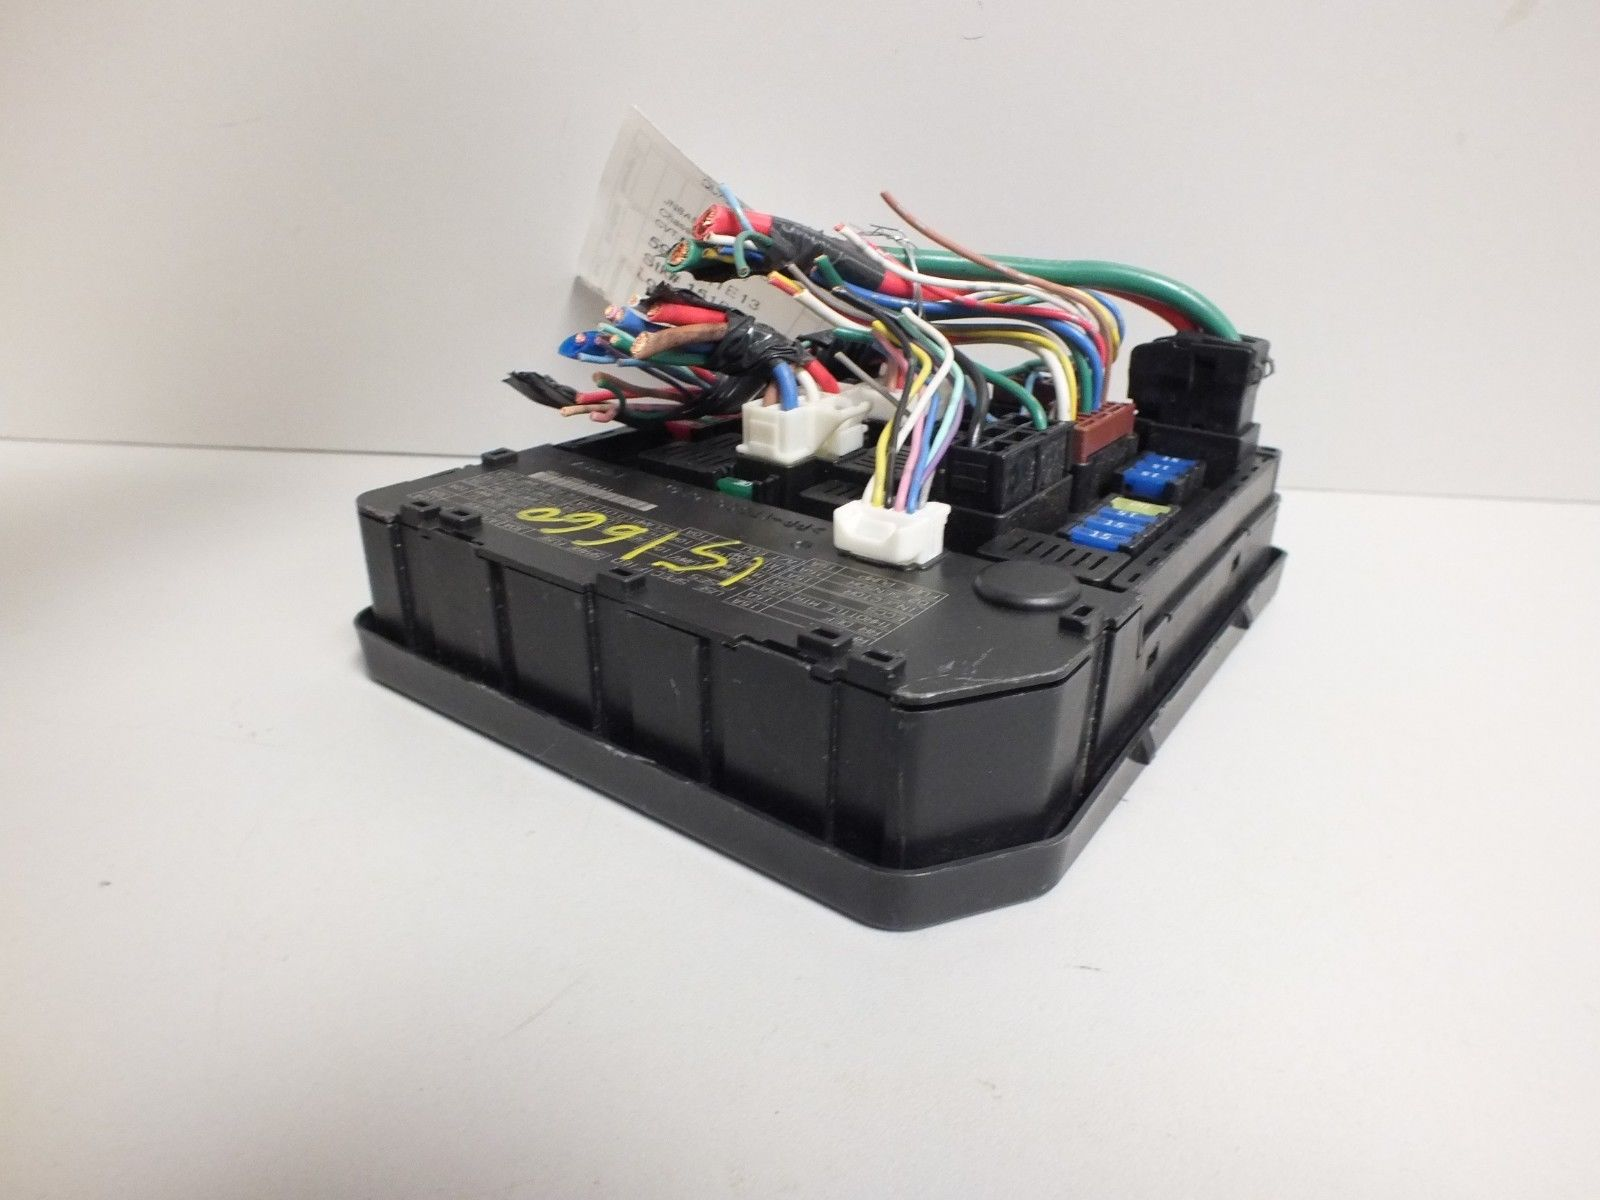 hight resolution of 11 12 13 2011 2012 2013 nissan rogue fuse box control module 284b6 jg03a 1770